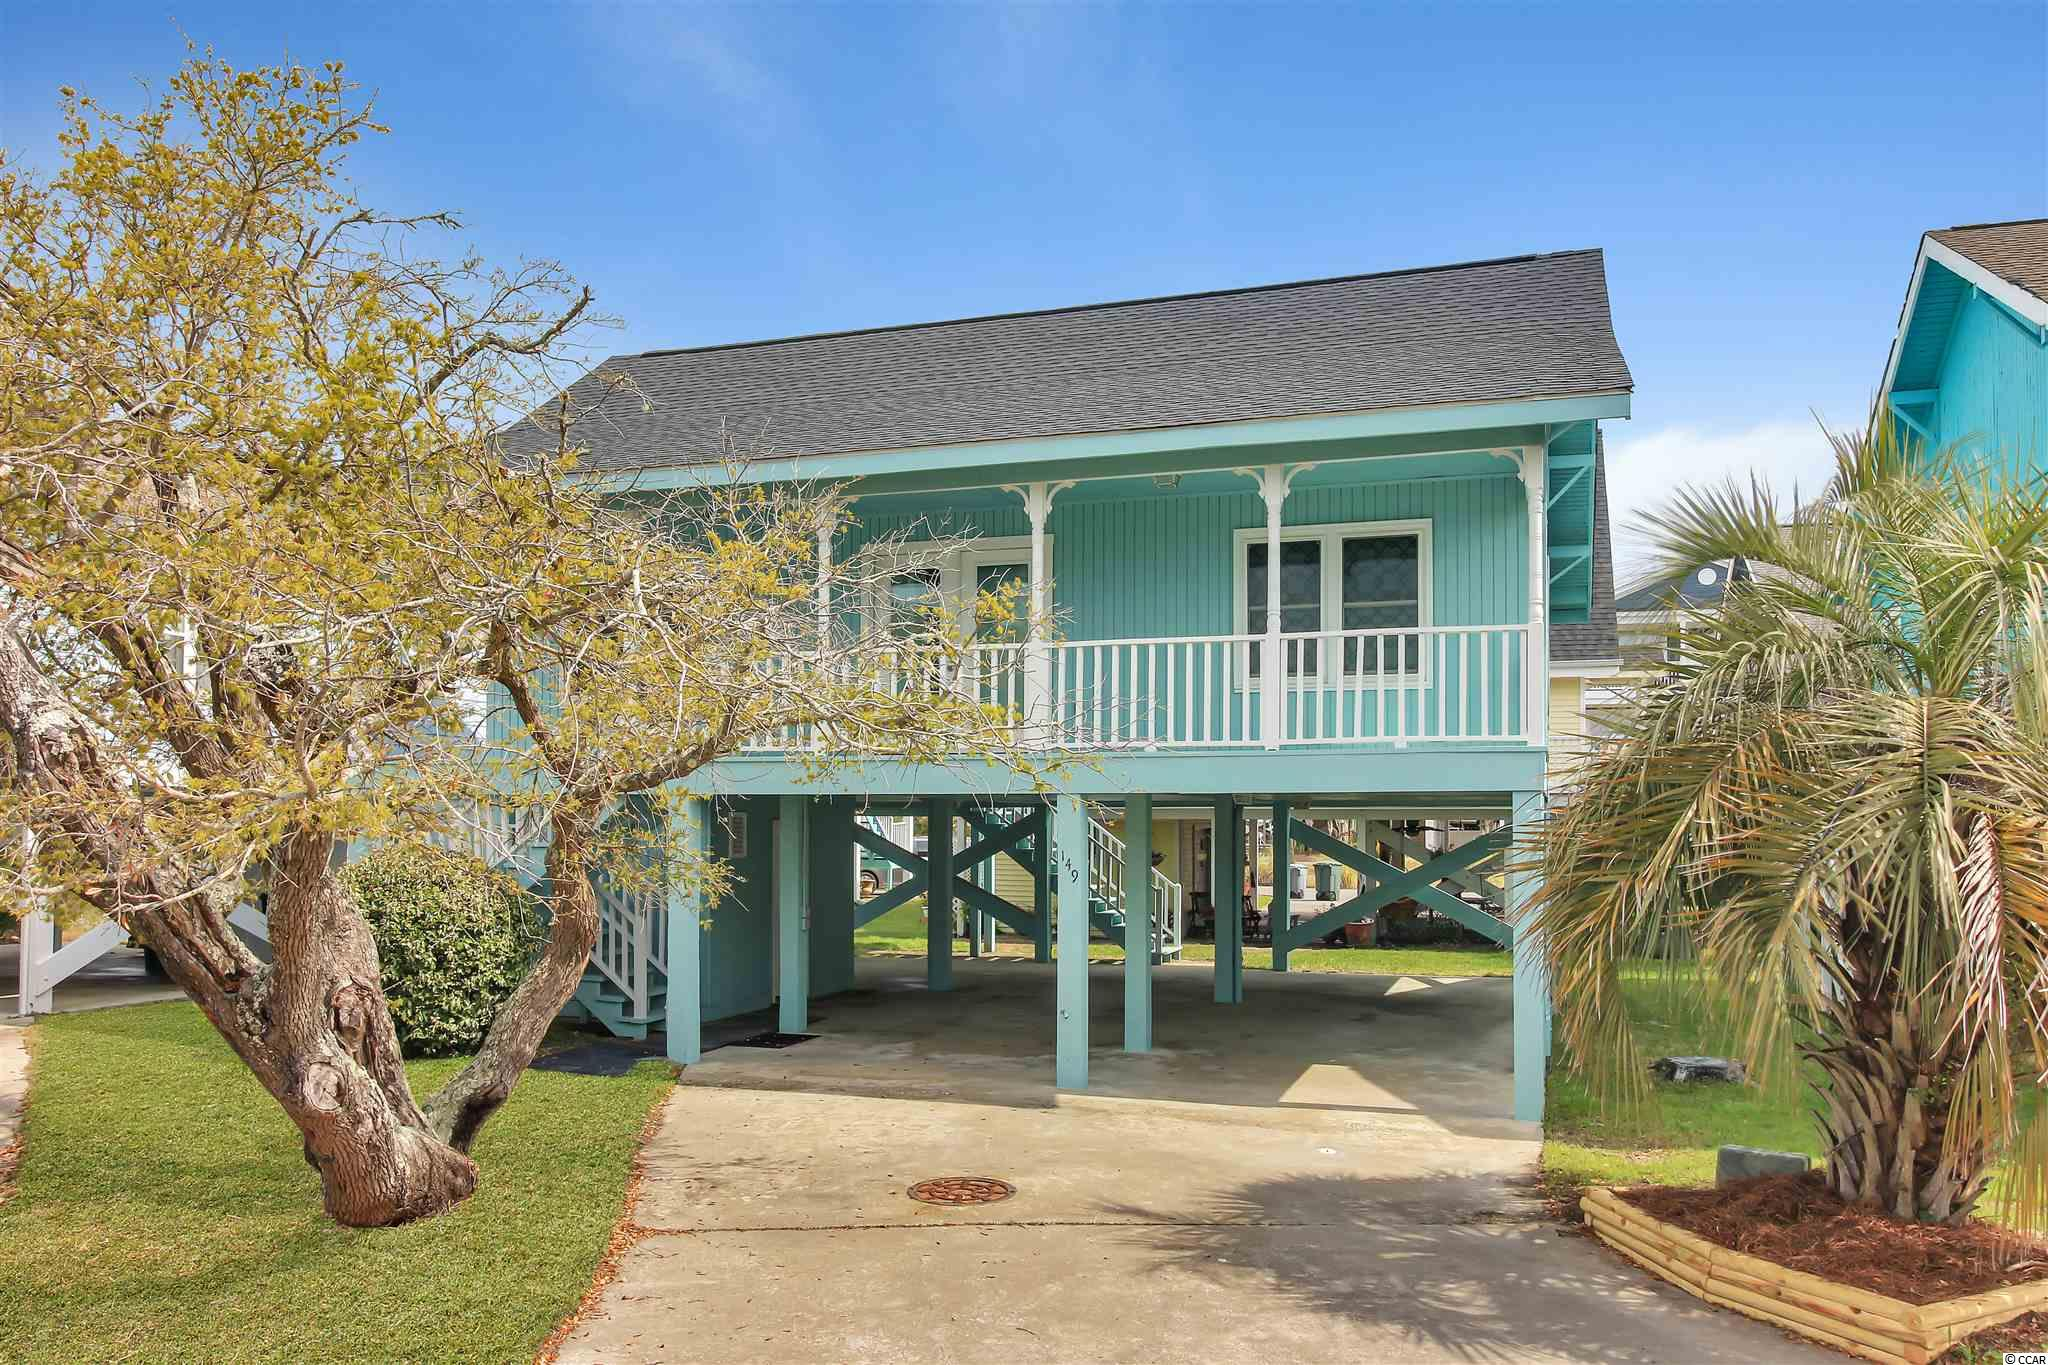 This Garden City Beach cottage is located just a stone's throw away from the beautiful Atlantic Ocean. You can even catch a glimpse of the Murrells Inlet Marsh from the kitchen and the back porch! As you enter from the front porch, you come in to the living area.  On the right side of the home, you have two bedrooms with a shared bath in between them. On the left side is the Master Suite as well as the Kitchen. The Master features an ensuite full bathroom for privacy. Downstairs there is plentiful parking and a great place to sit if you want to sit and eat in the shade and feel the ocean breeze, and an enclosed storage room large enough to house a golf cart.